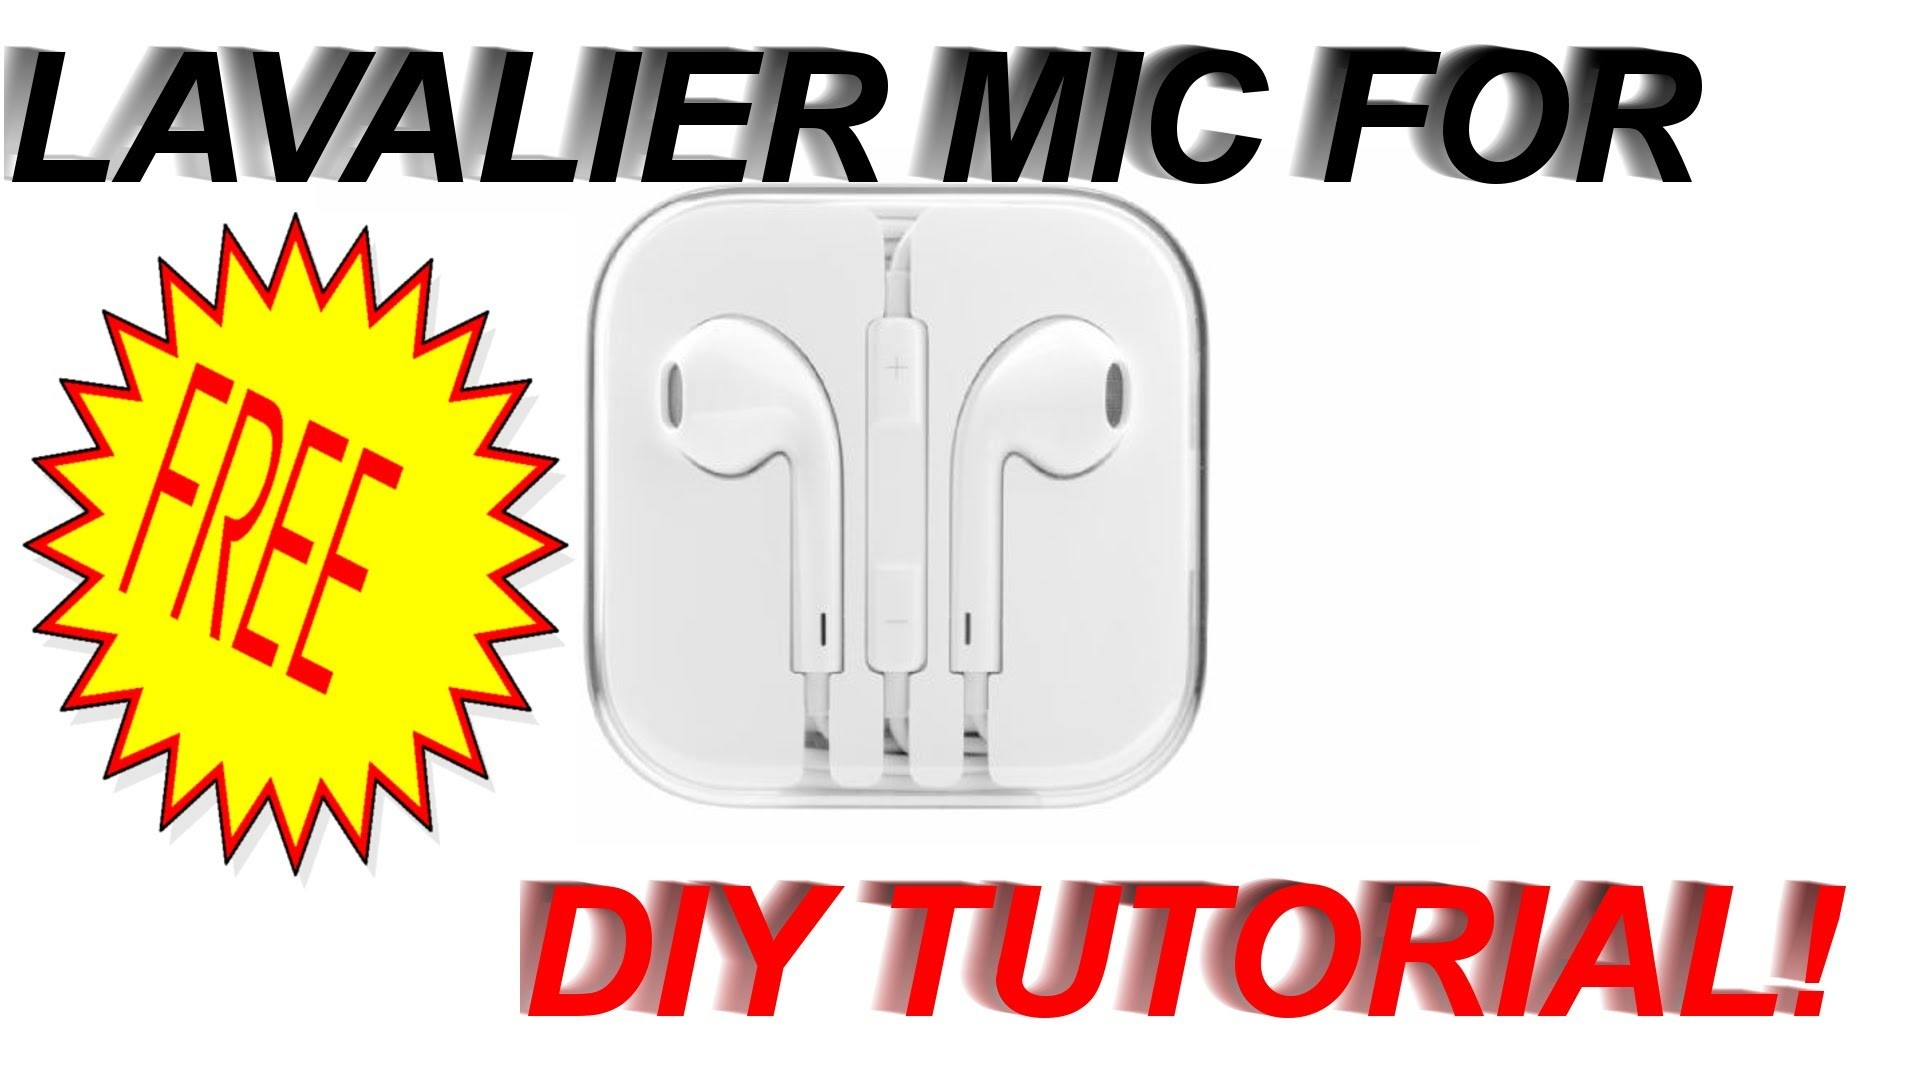 How to Get Your Own Lavalier Mic For FREE! DIY Tutorial